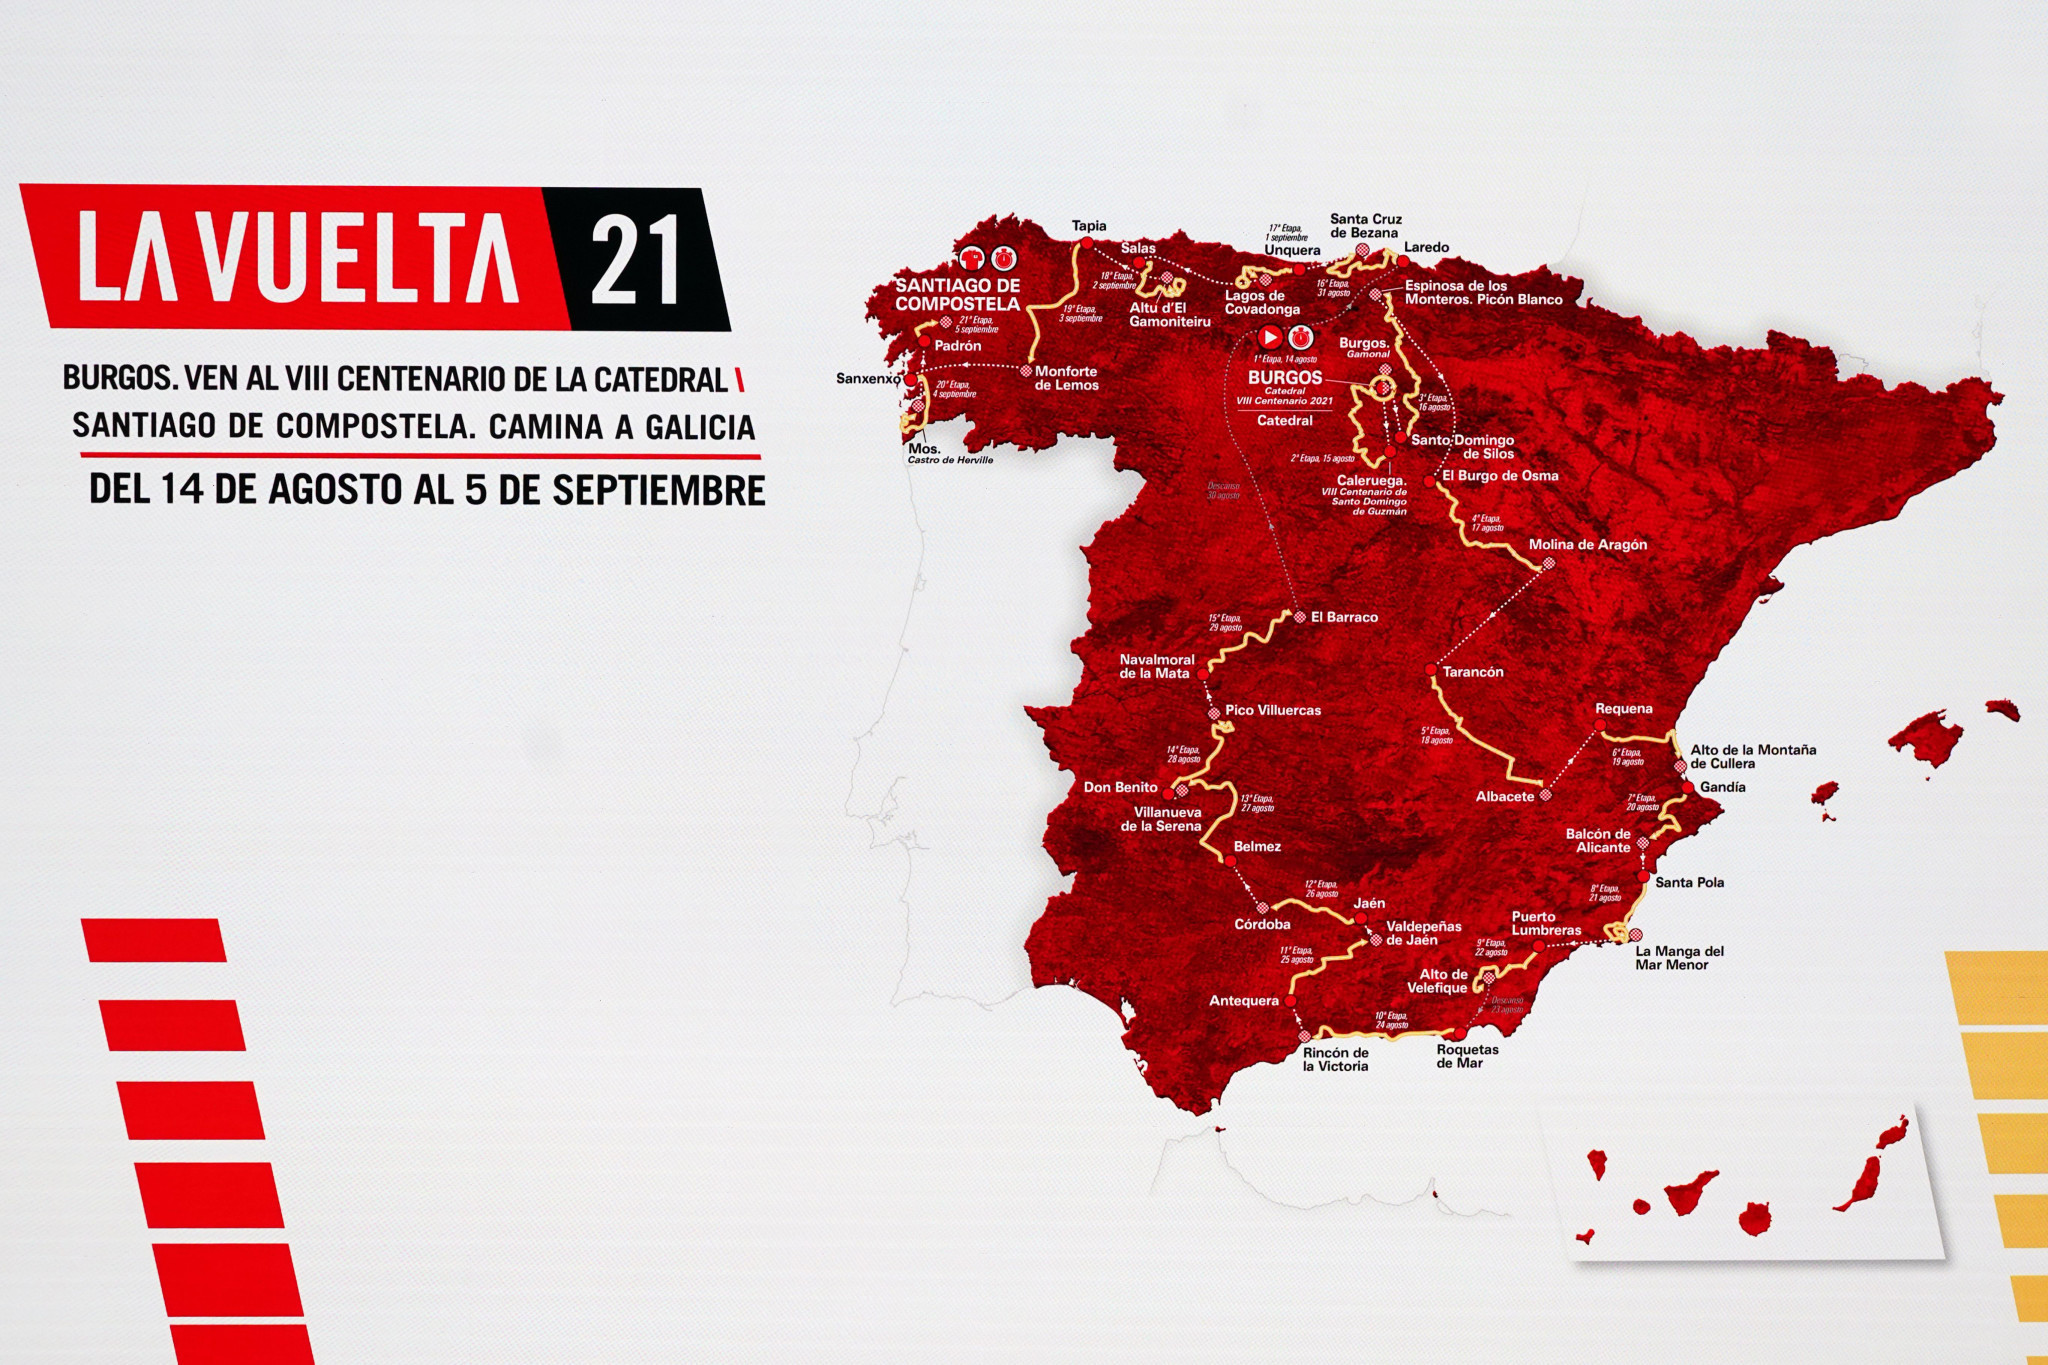 Five stages of the Vuelta a España can be done virtually at the same time as part of La Vuelta Virtual © Getty Images